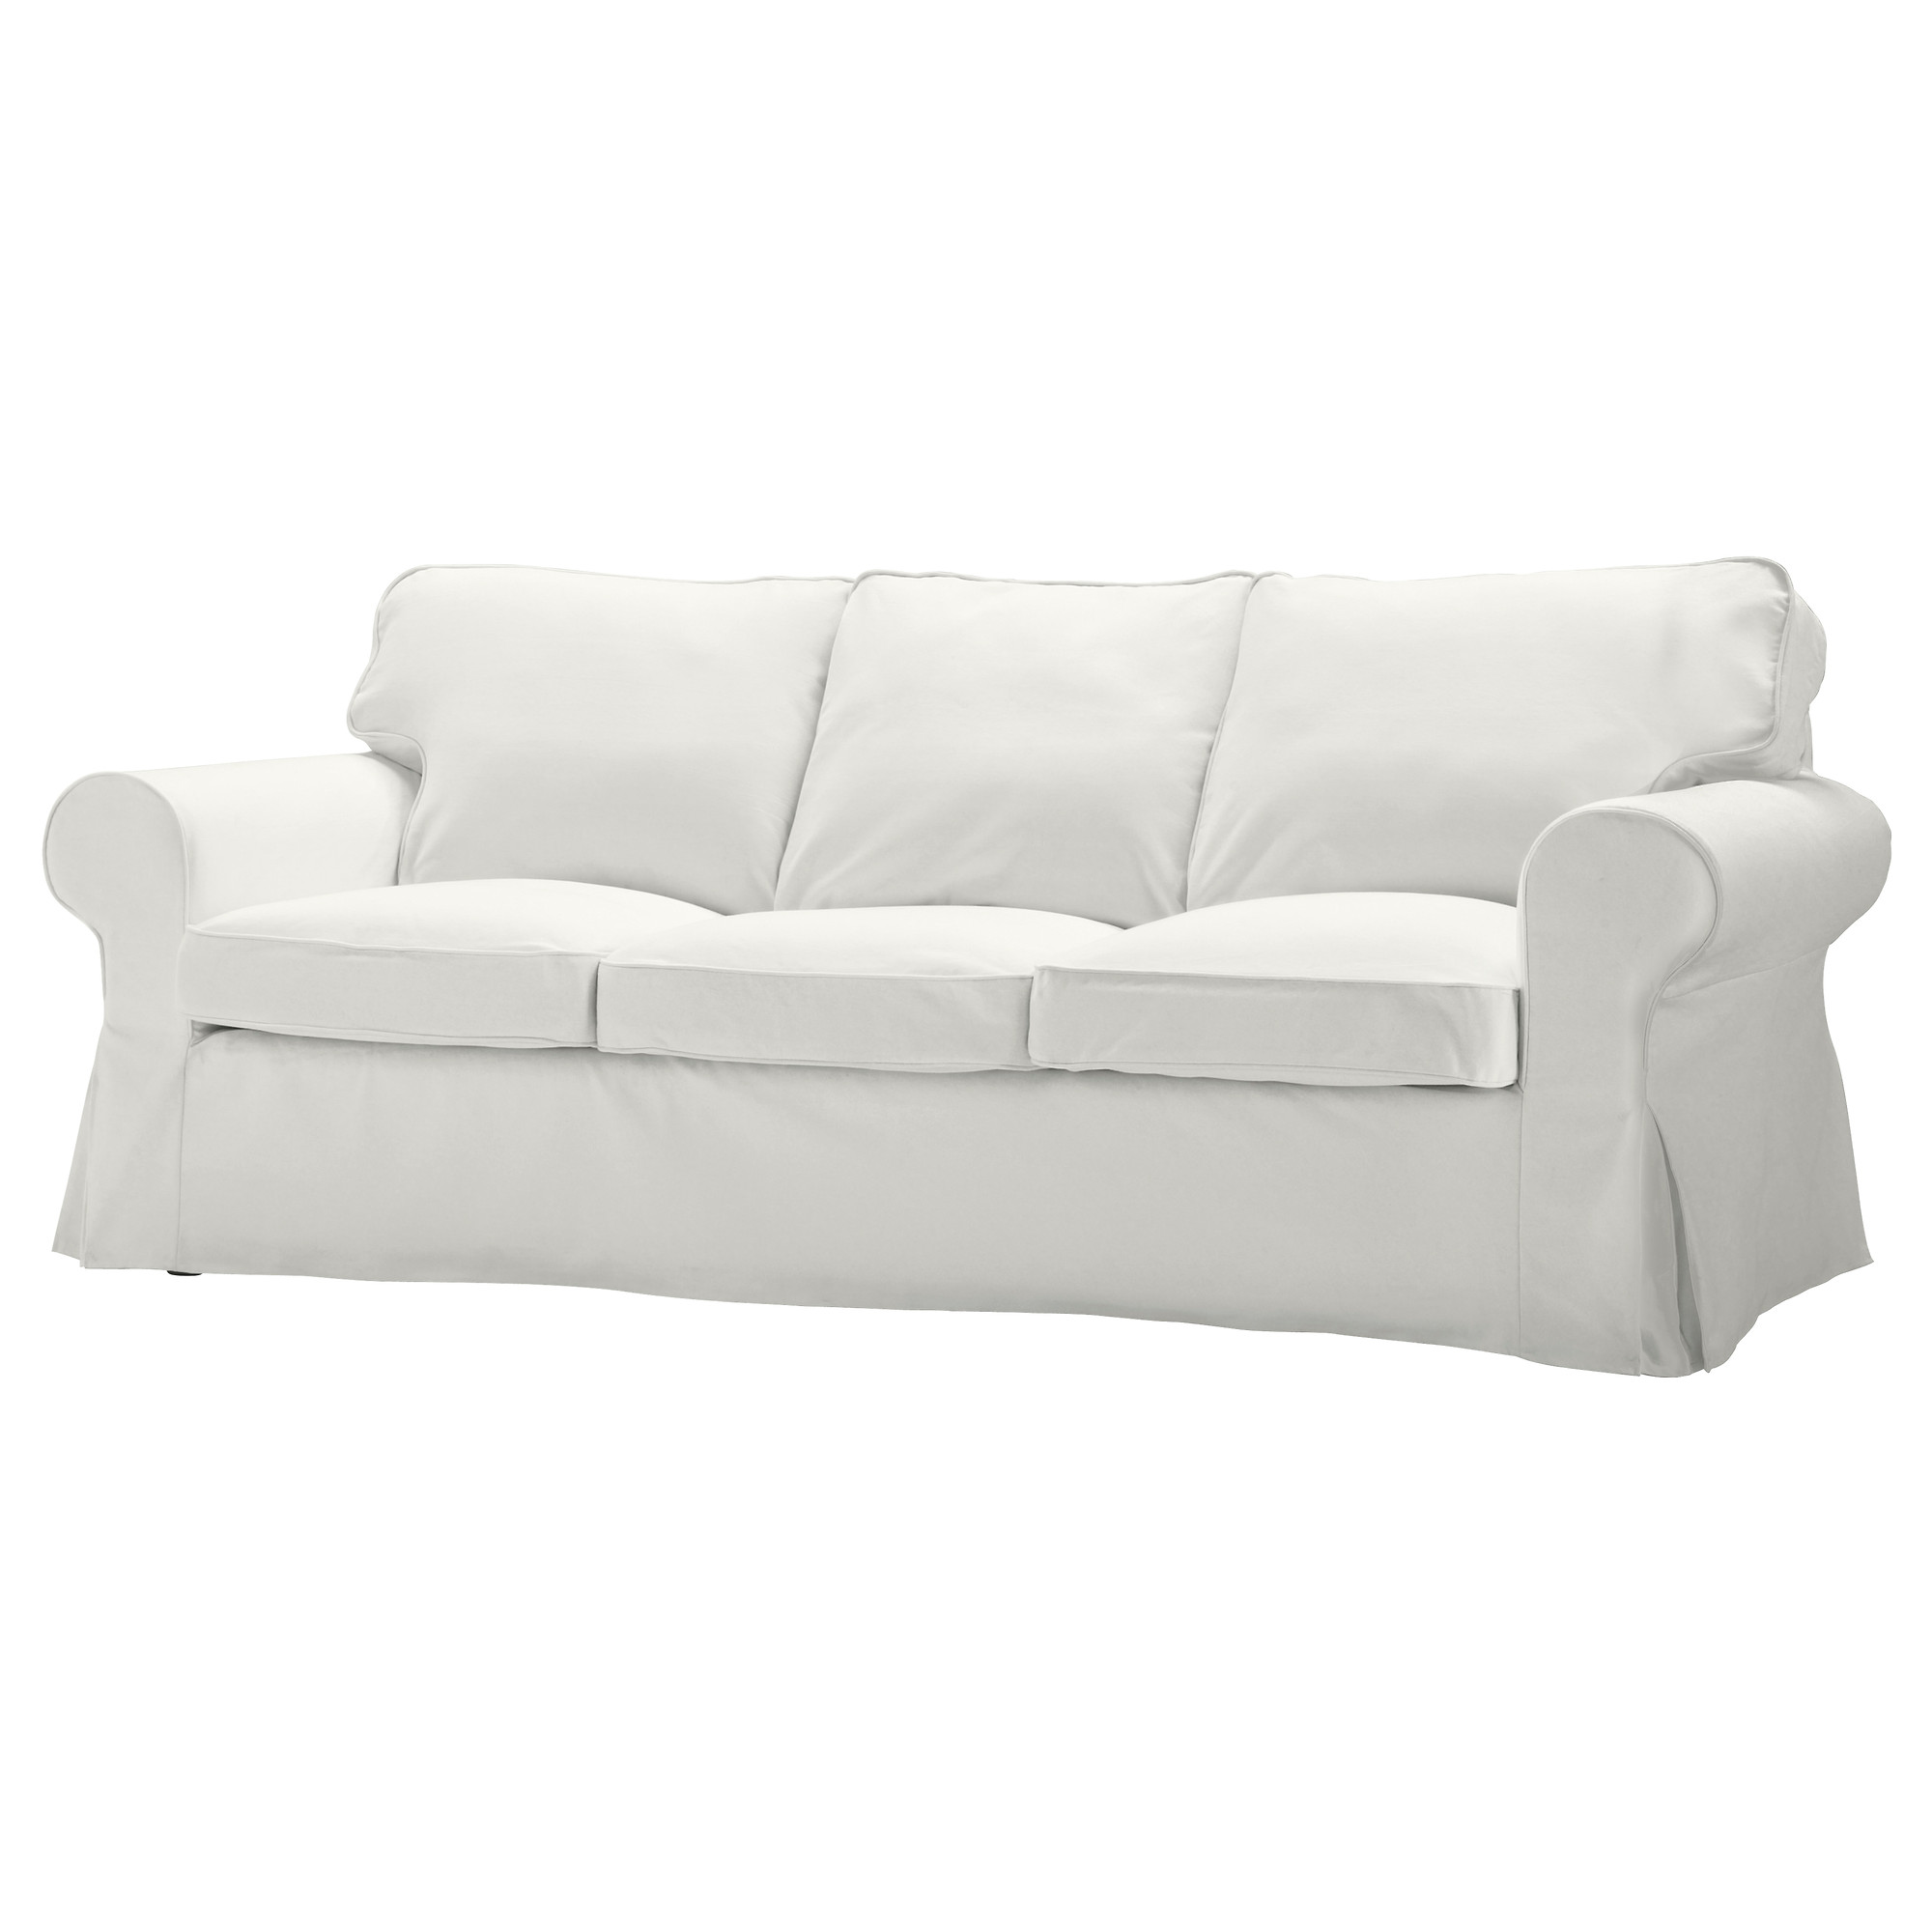 ikea karlanda sofa covers uk power recliner bed ektorp three seat blekinge white beach condo